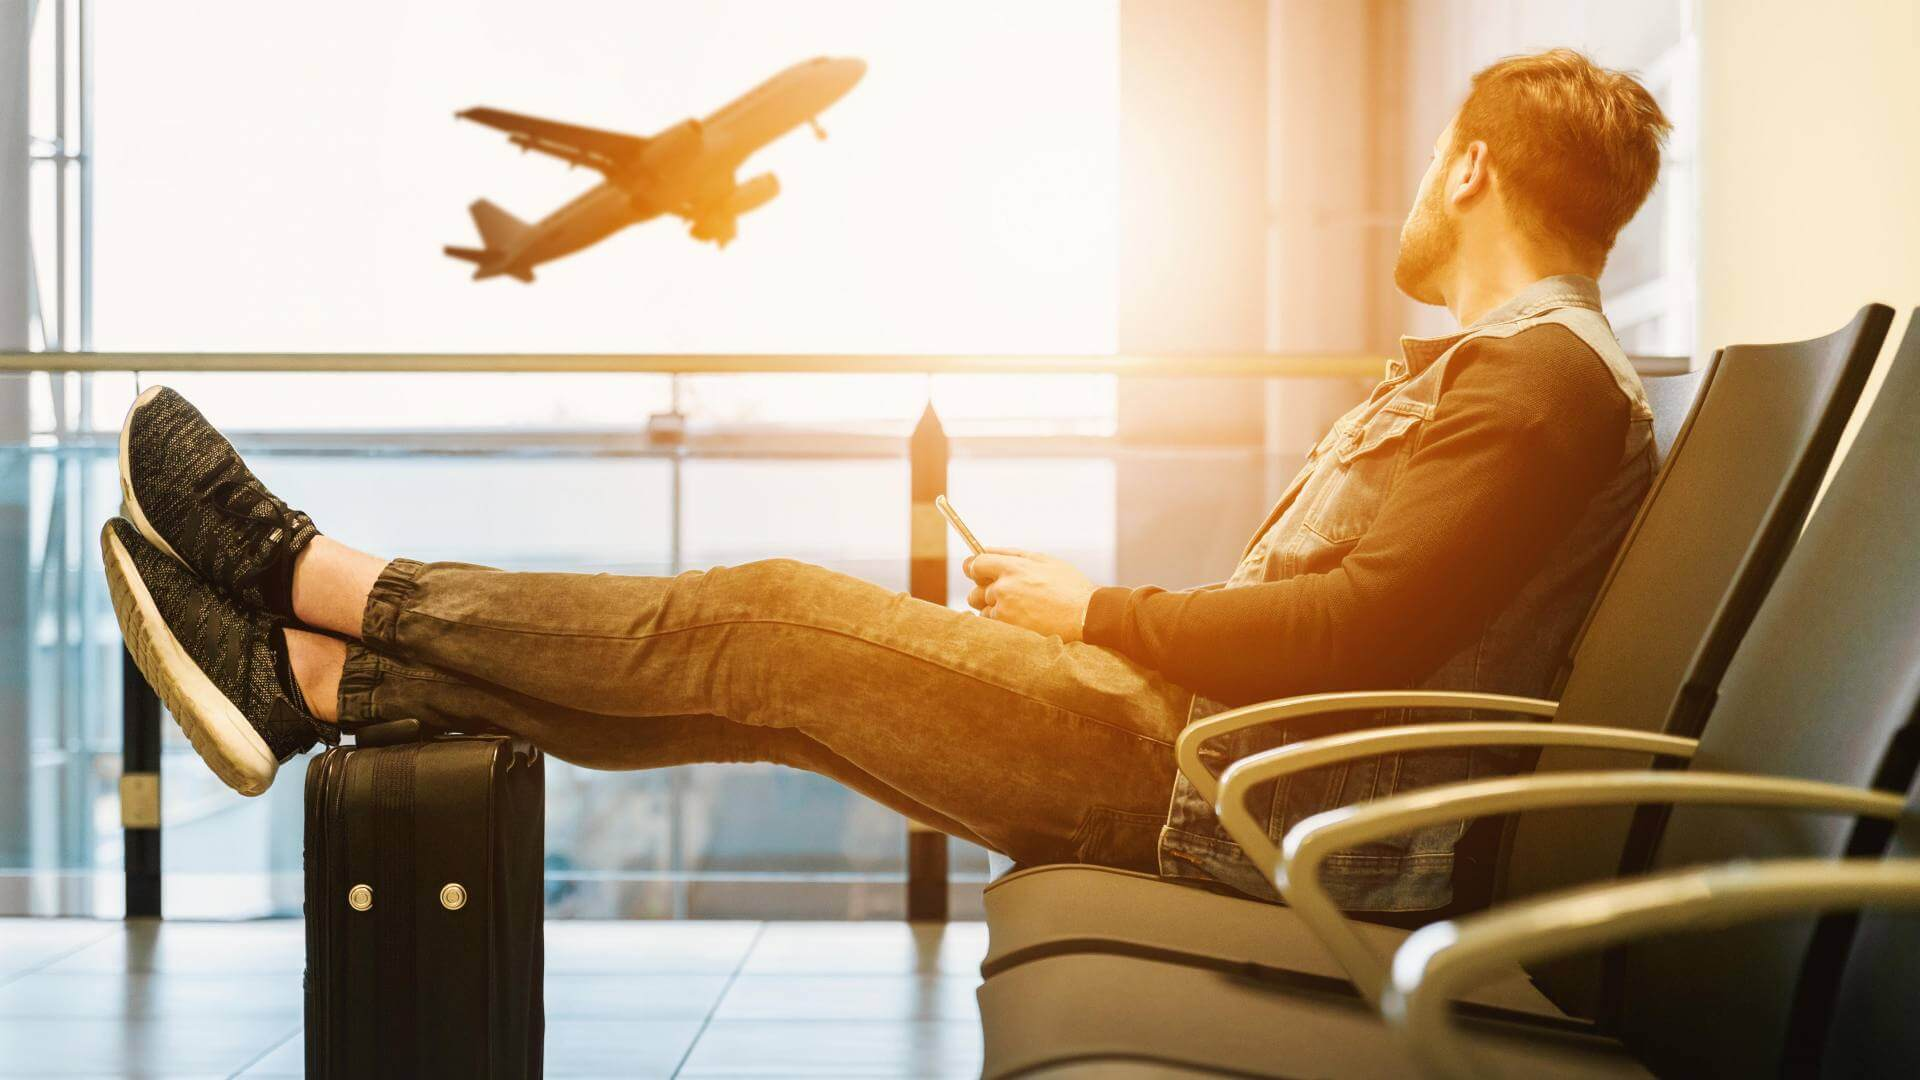 A man is sitting with his suitcase watching a plane flying outside the window.